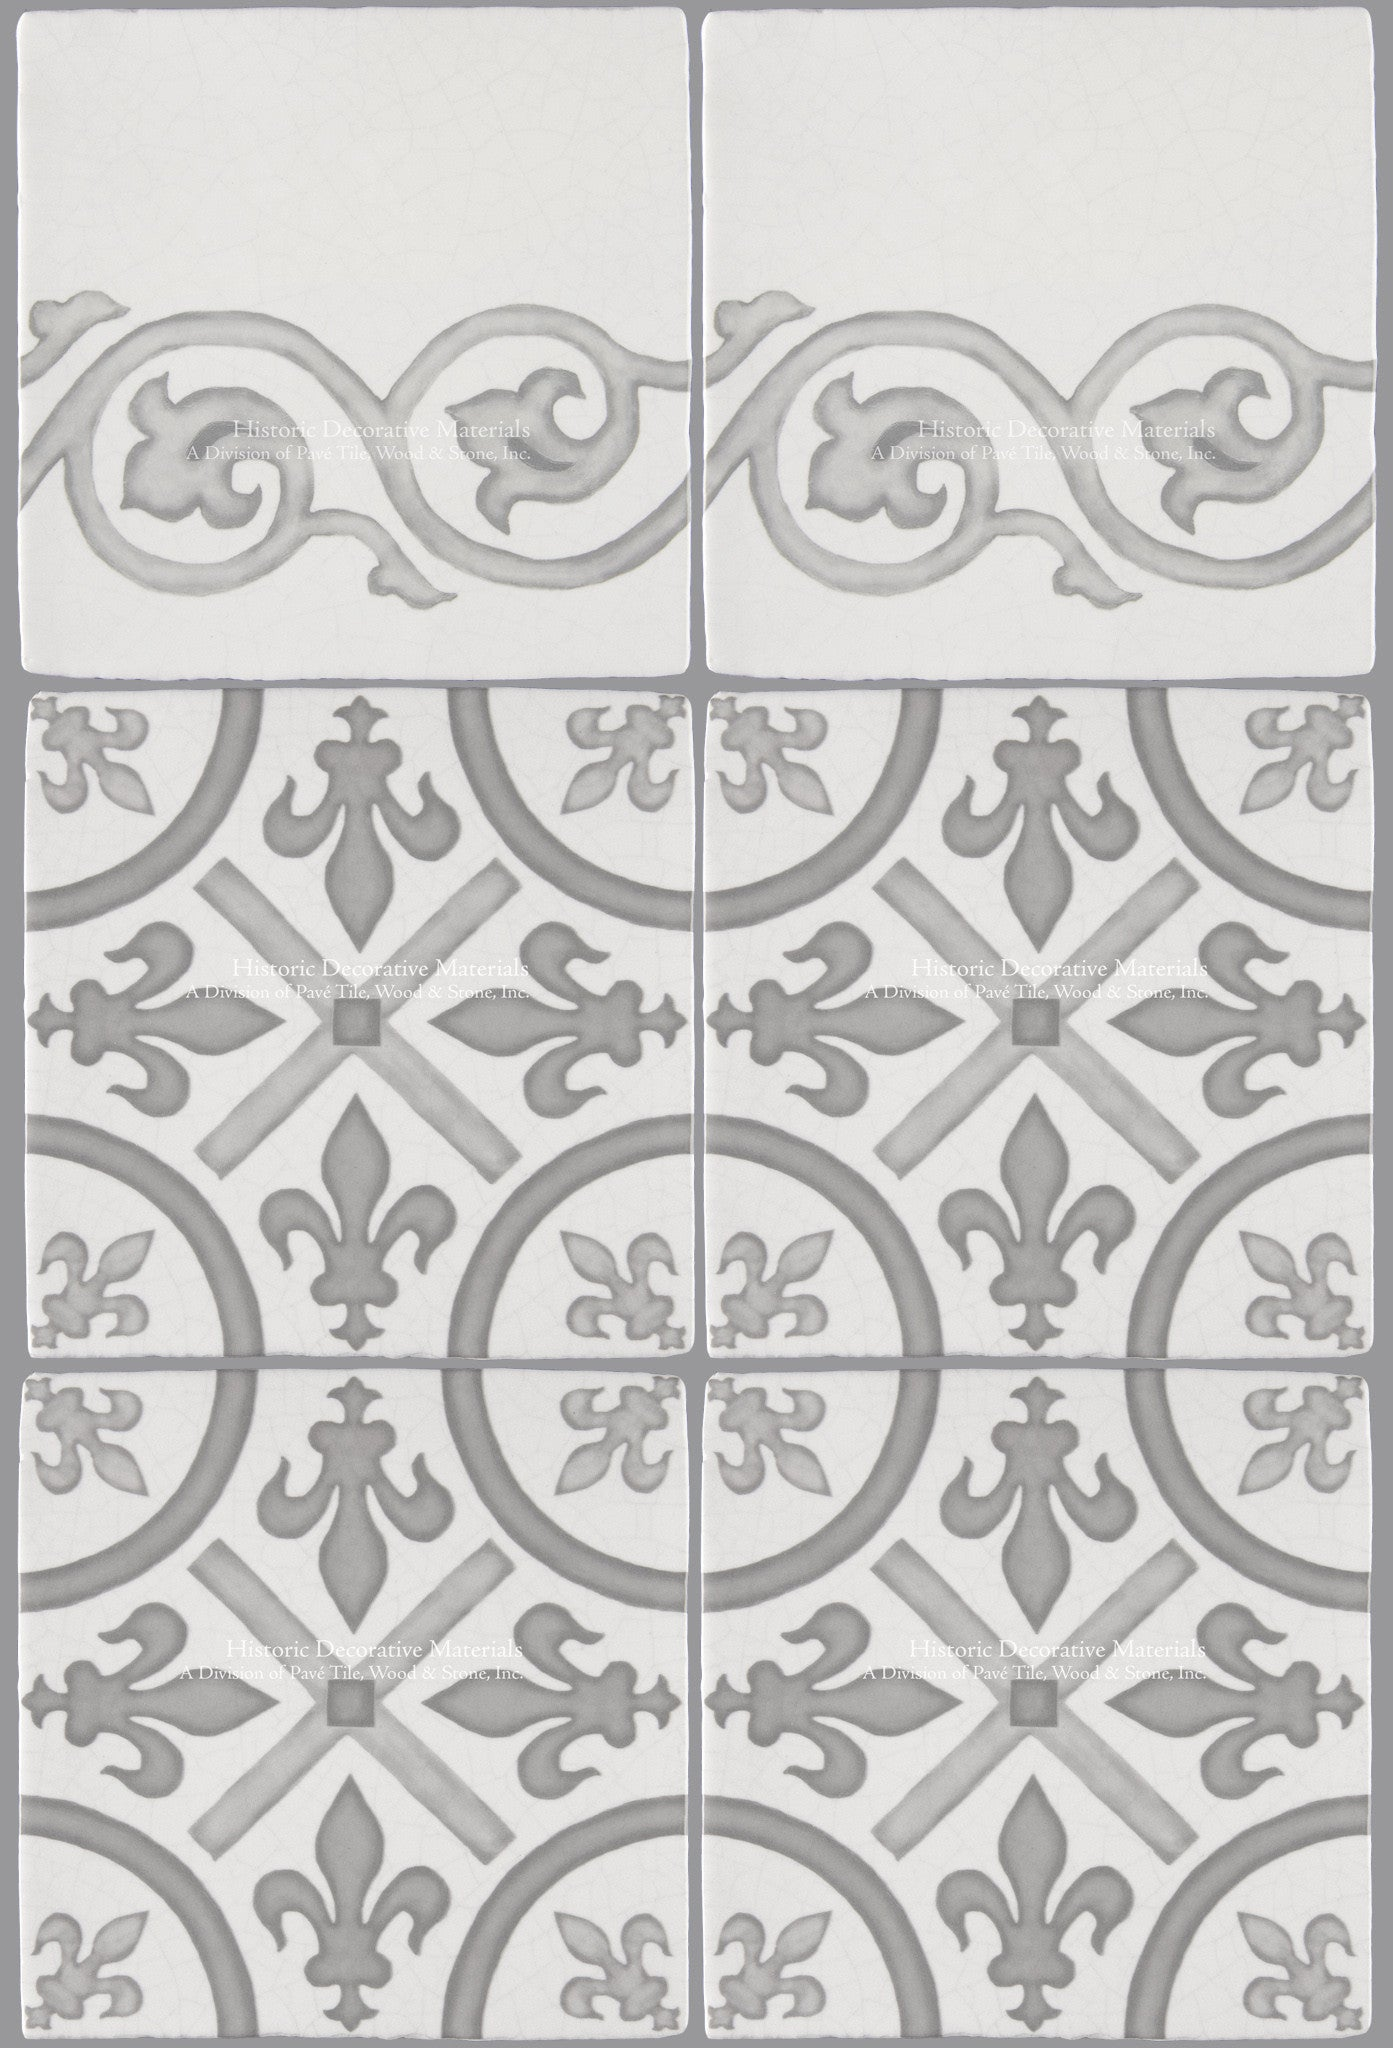 French Encaustic Decorative Wall Tile For Kitchens Baths And Fireplace Surround Tiles